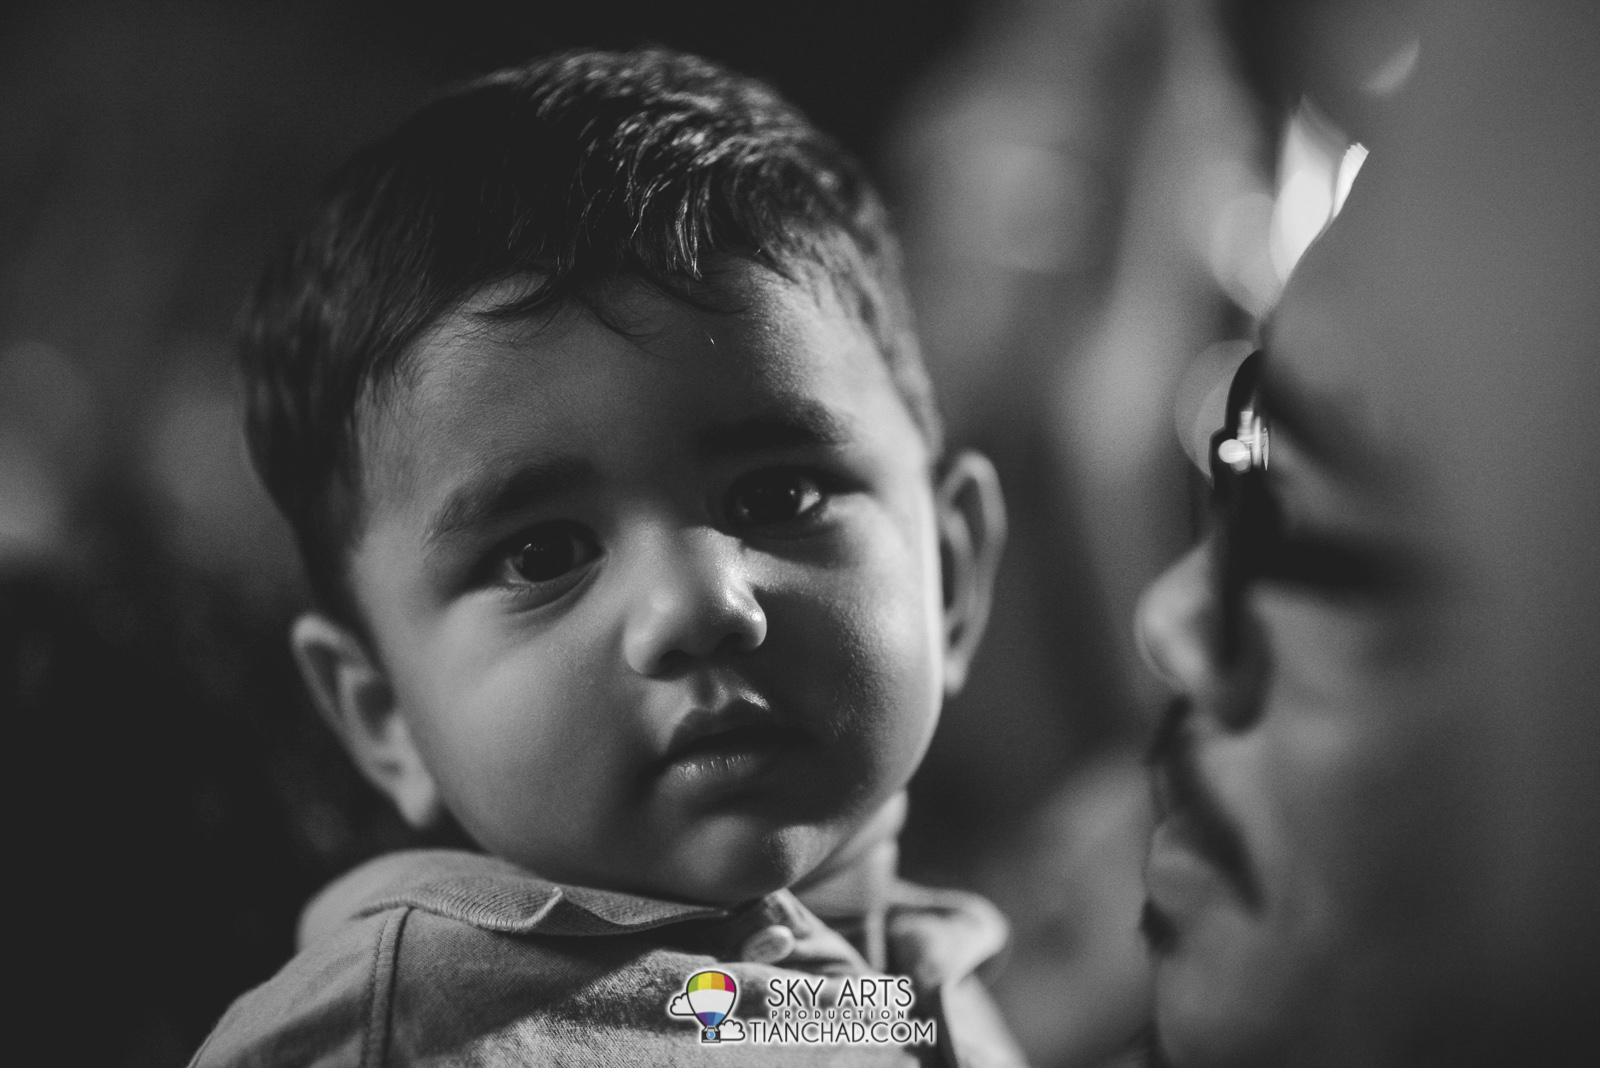 Photowalk to Thaipusam 2015 Batu Caves [Part 2]: Kid's gorgeous big eyes